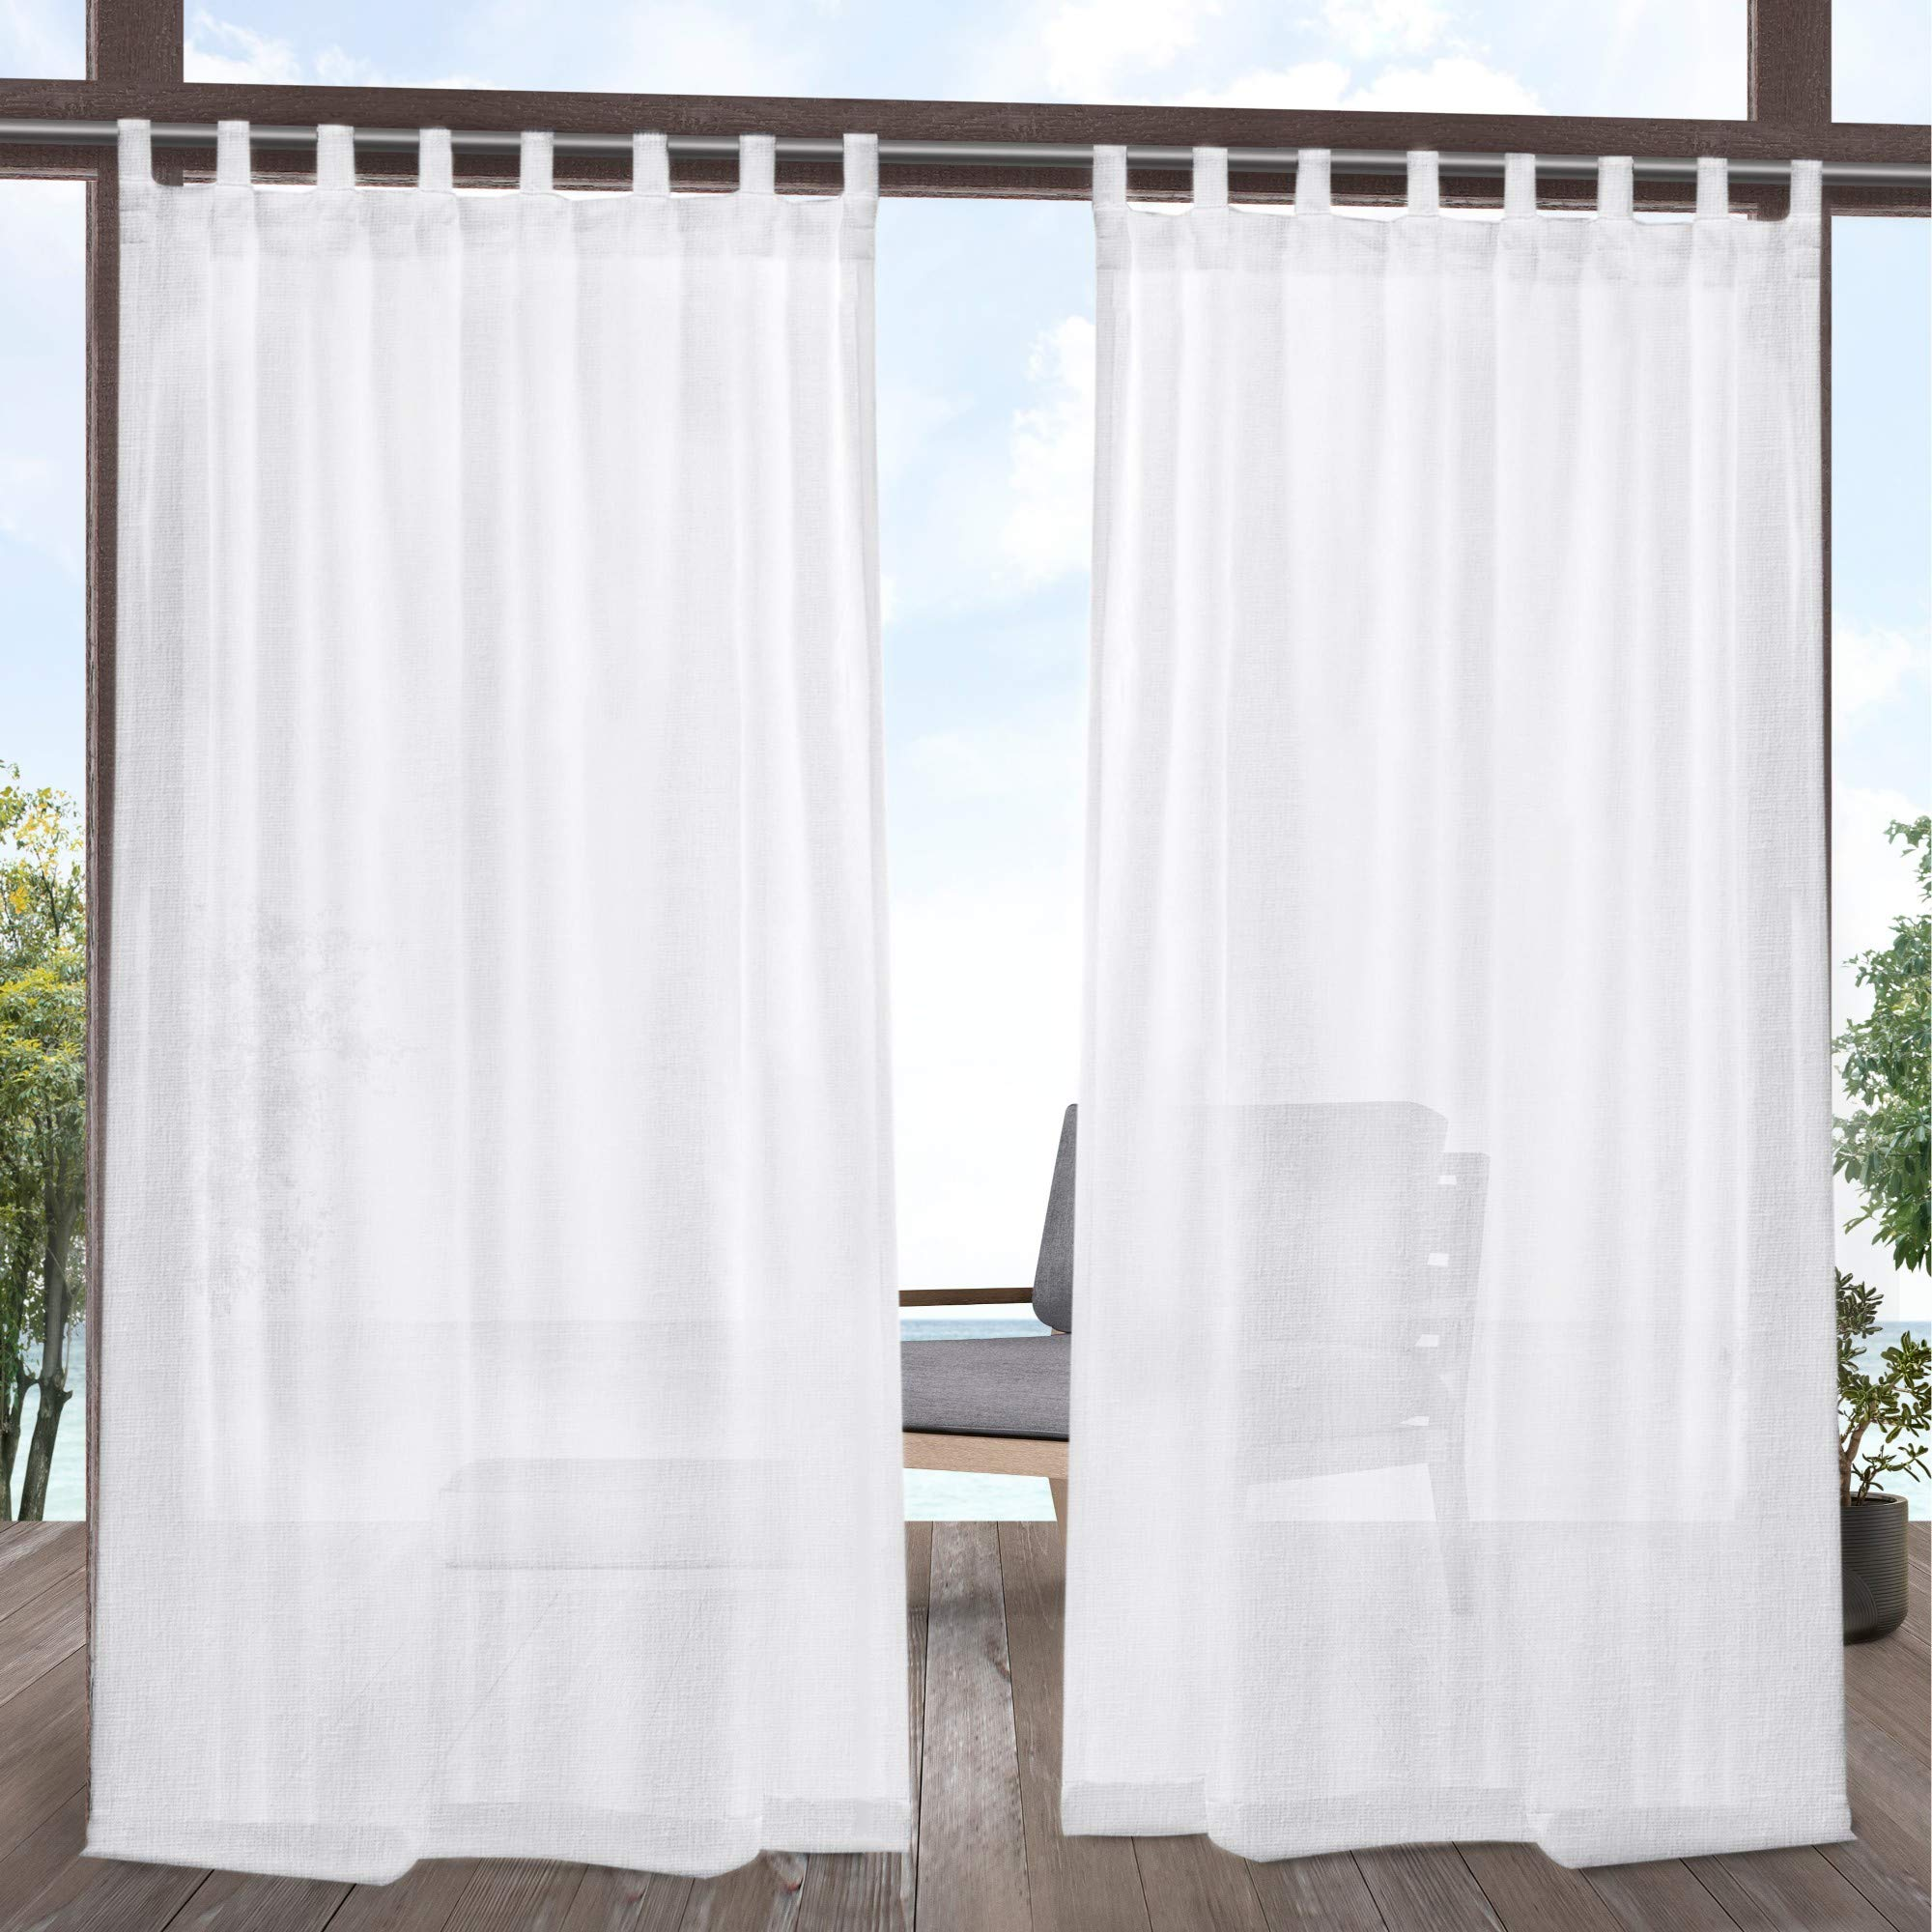 Exclusive Home Curtains Tao TT Panel Pair, 54 x 84'', White